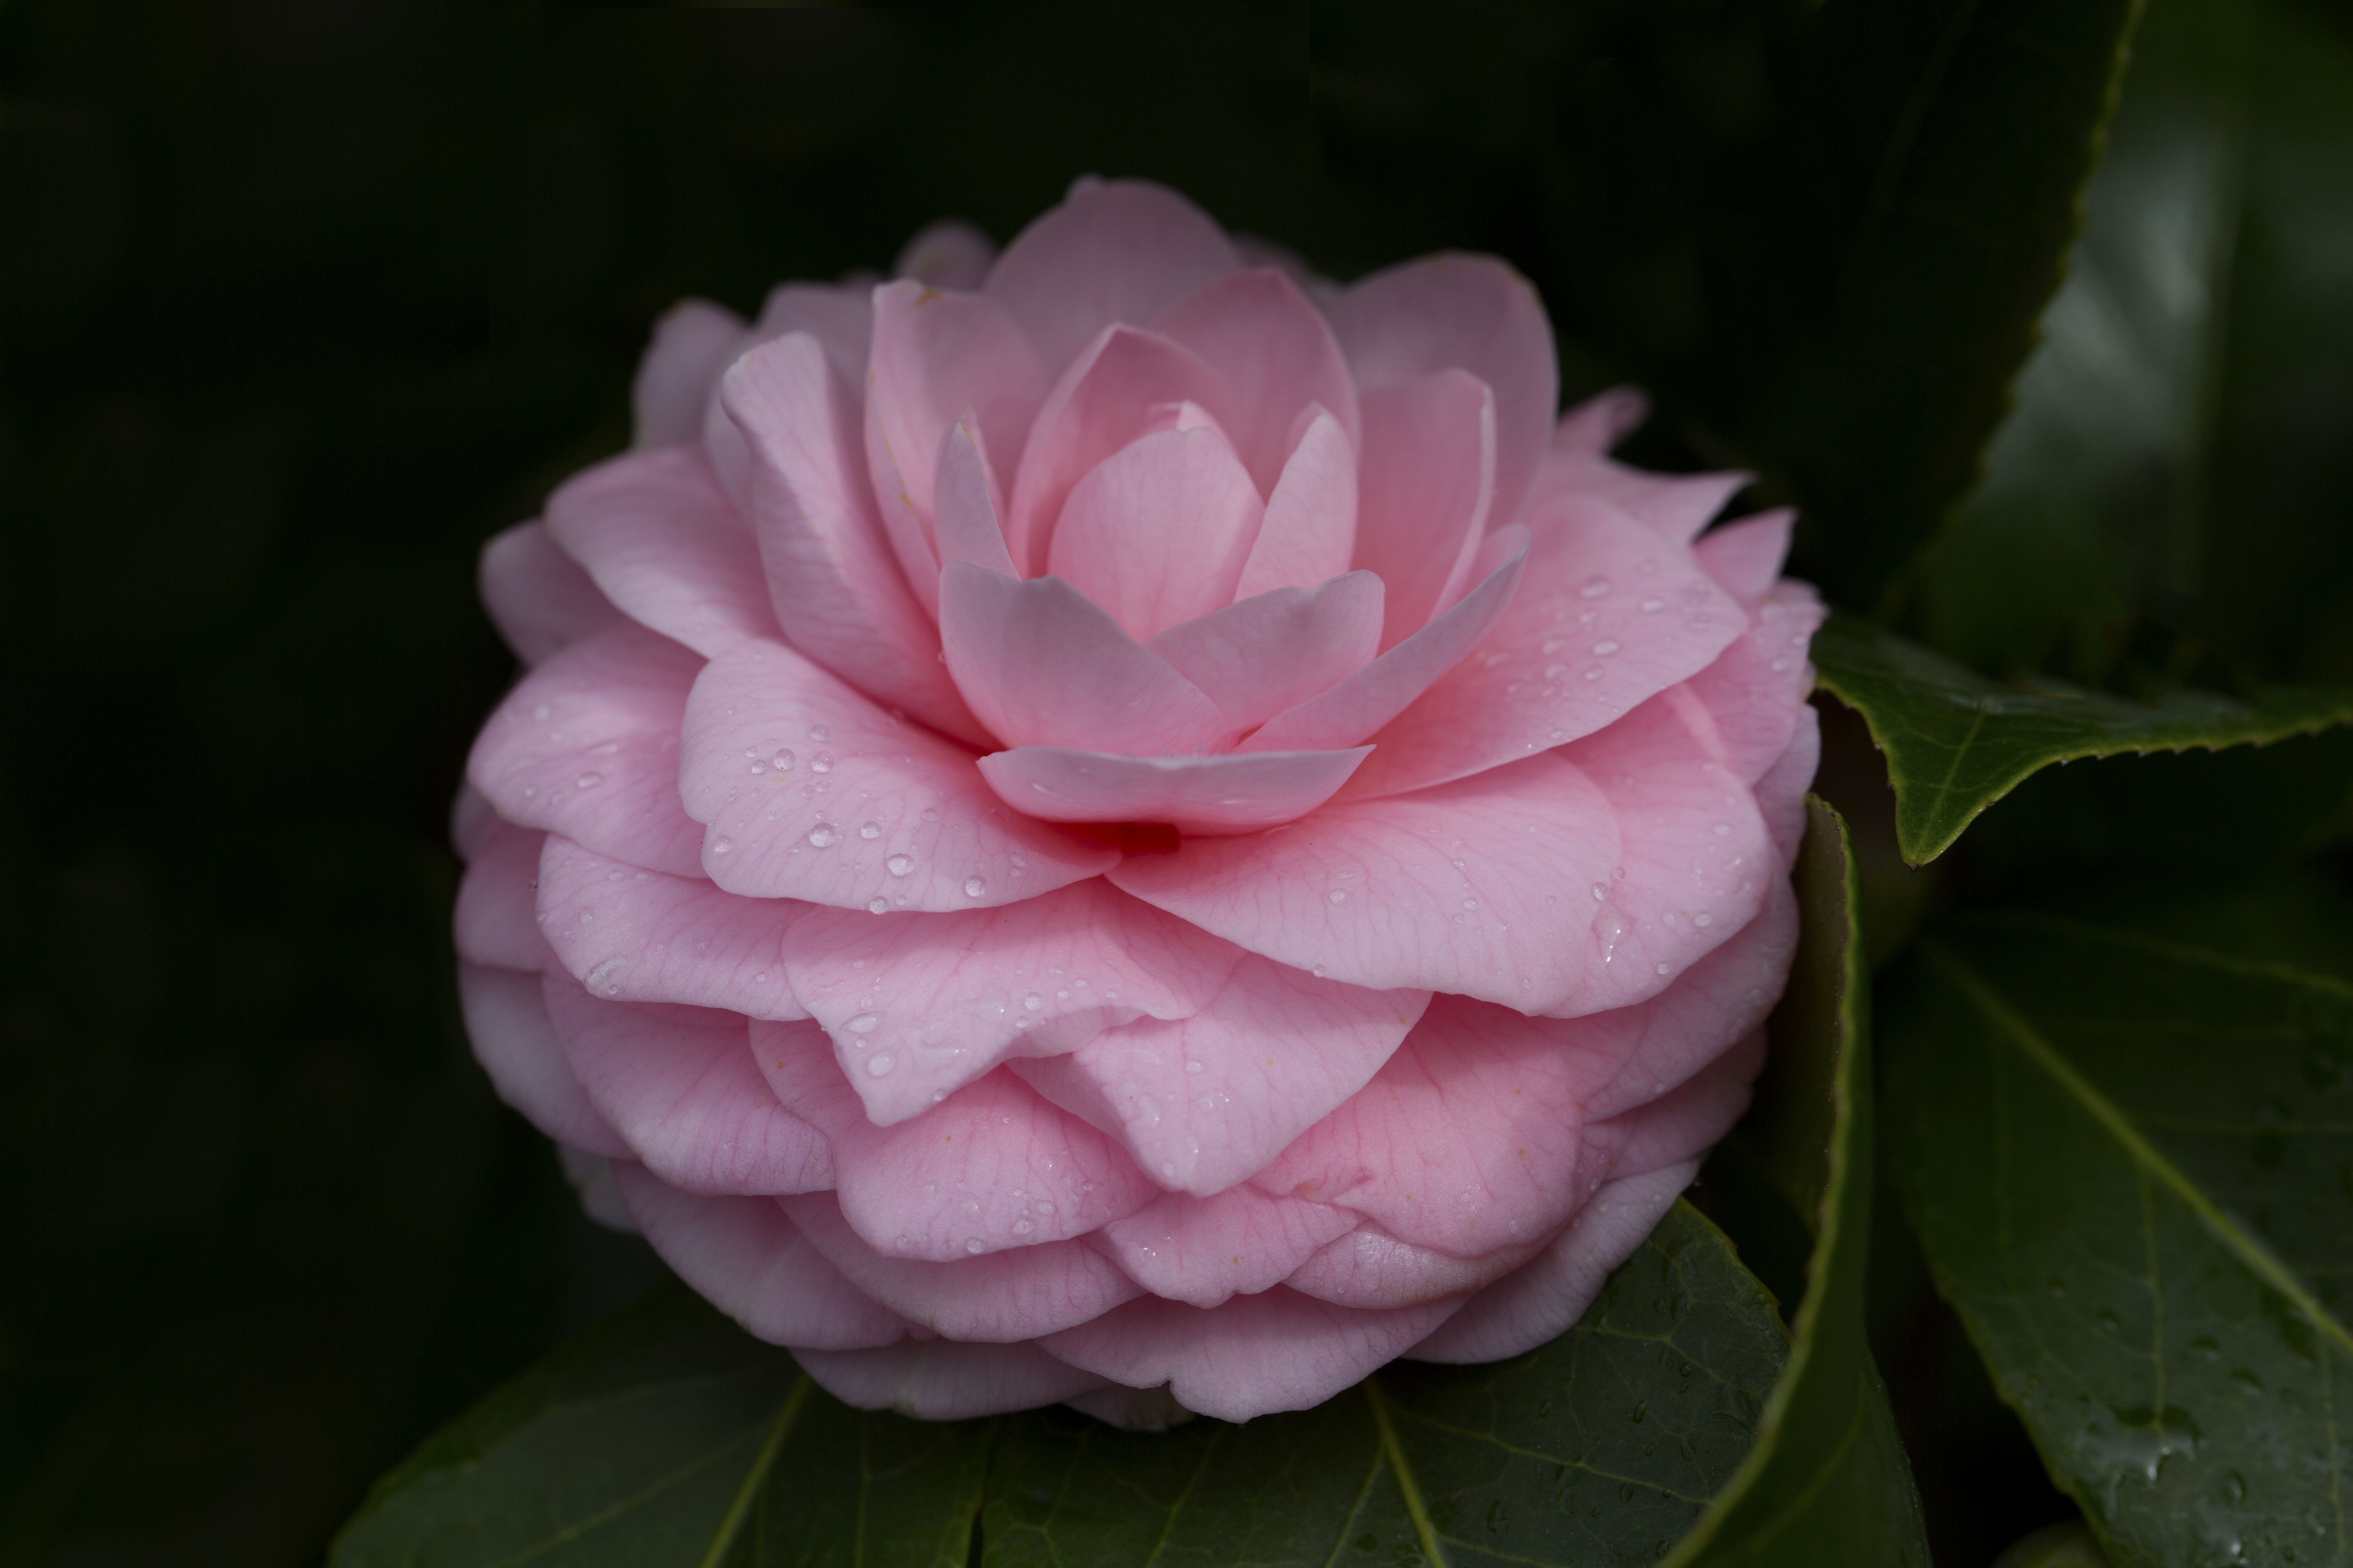 Layered Delicate Pink Camellia Flower Naturetime